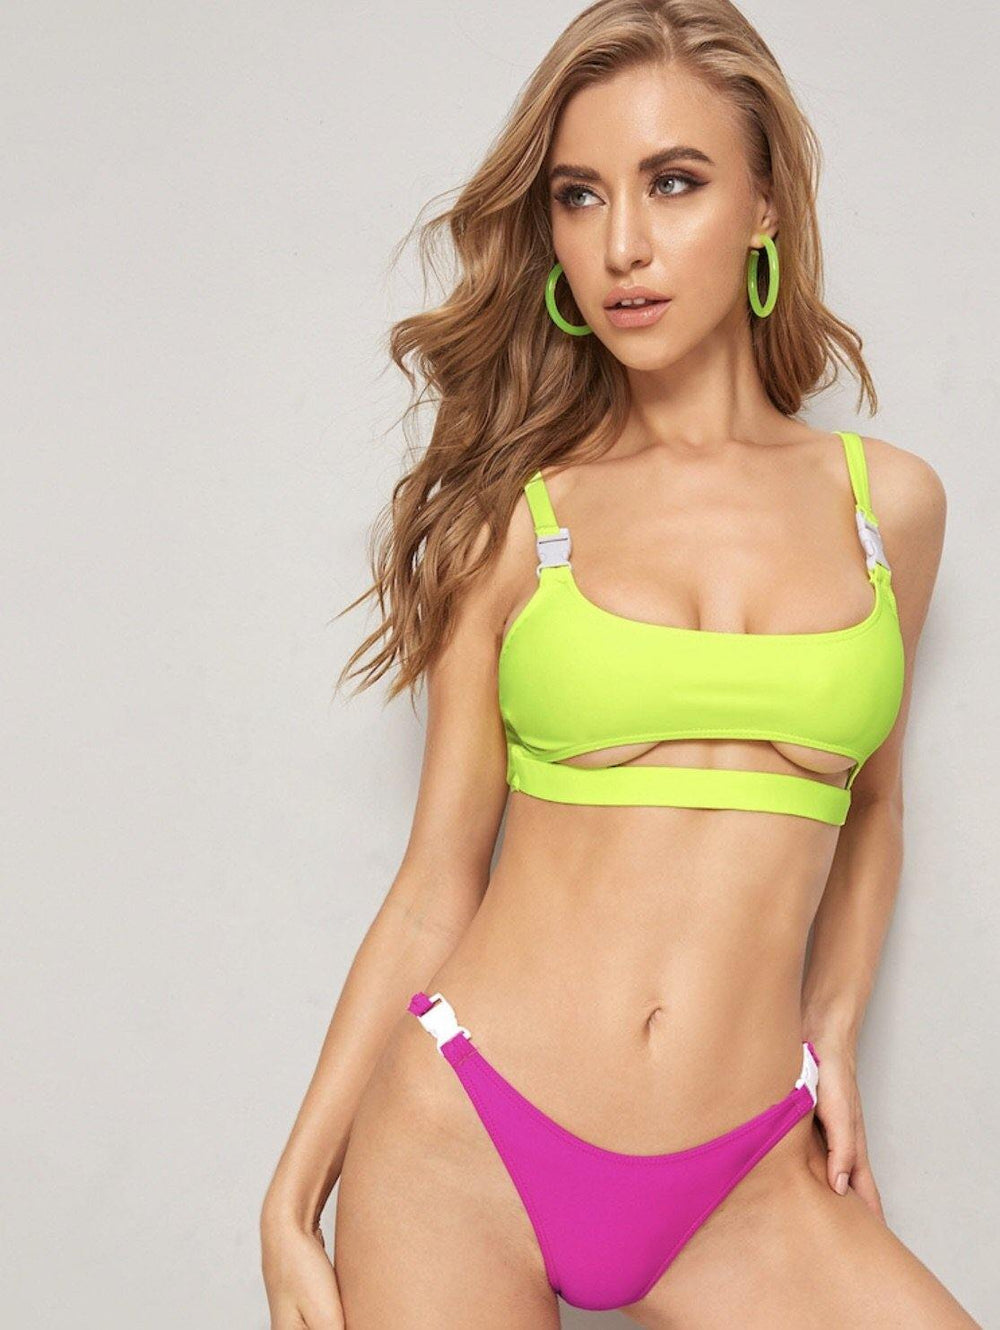 Bikini Summer Sale Pink And Yellow Swimsuit - Loving Lane Co